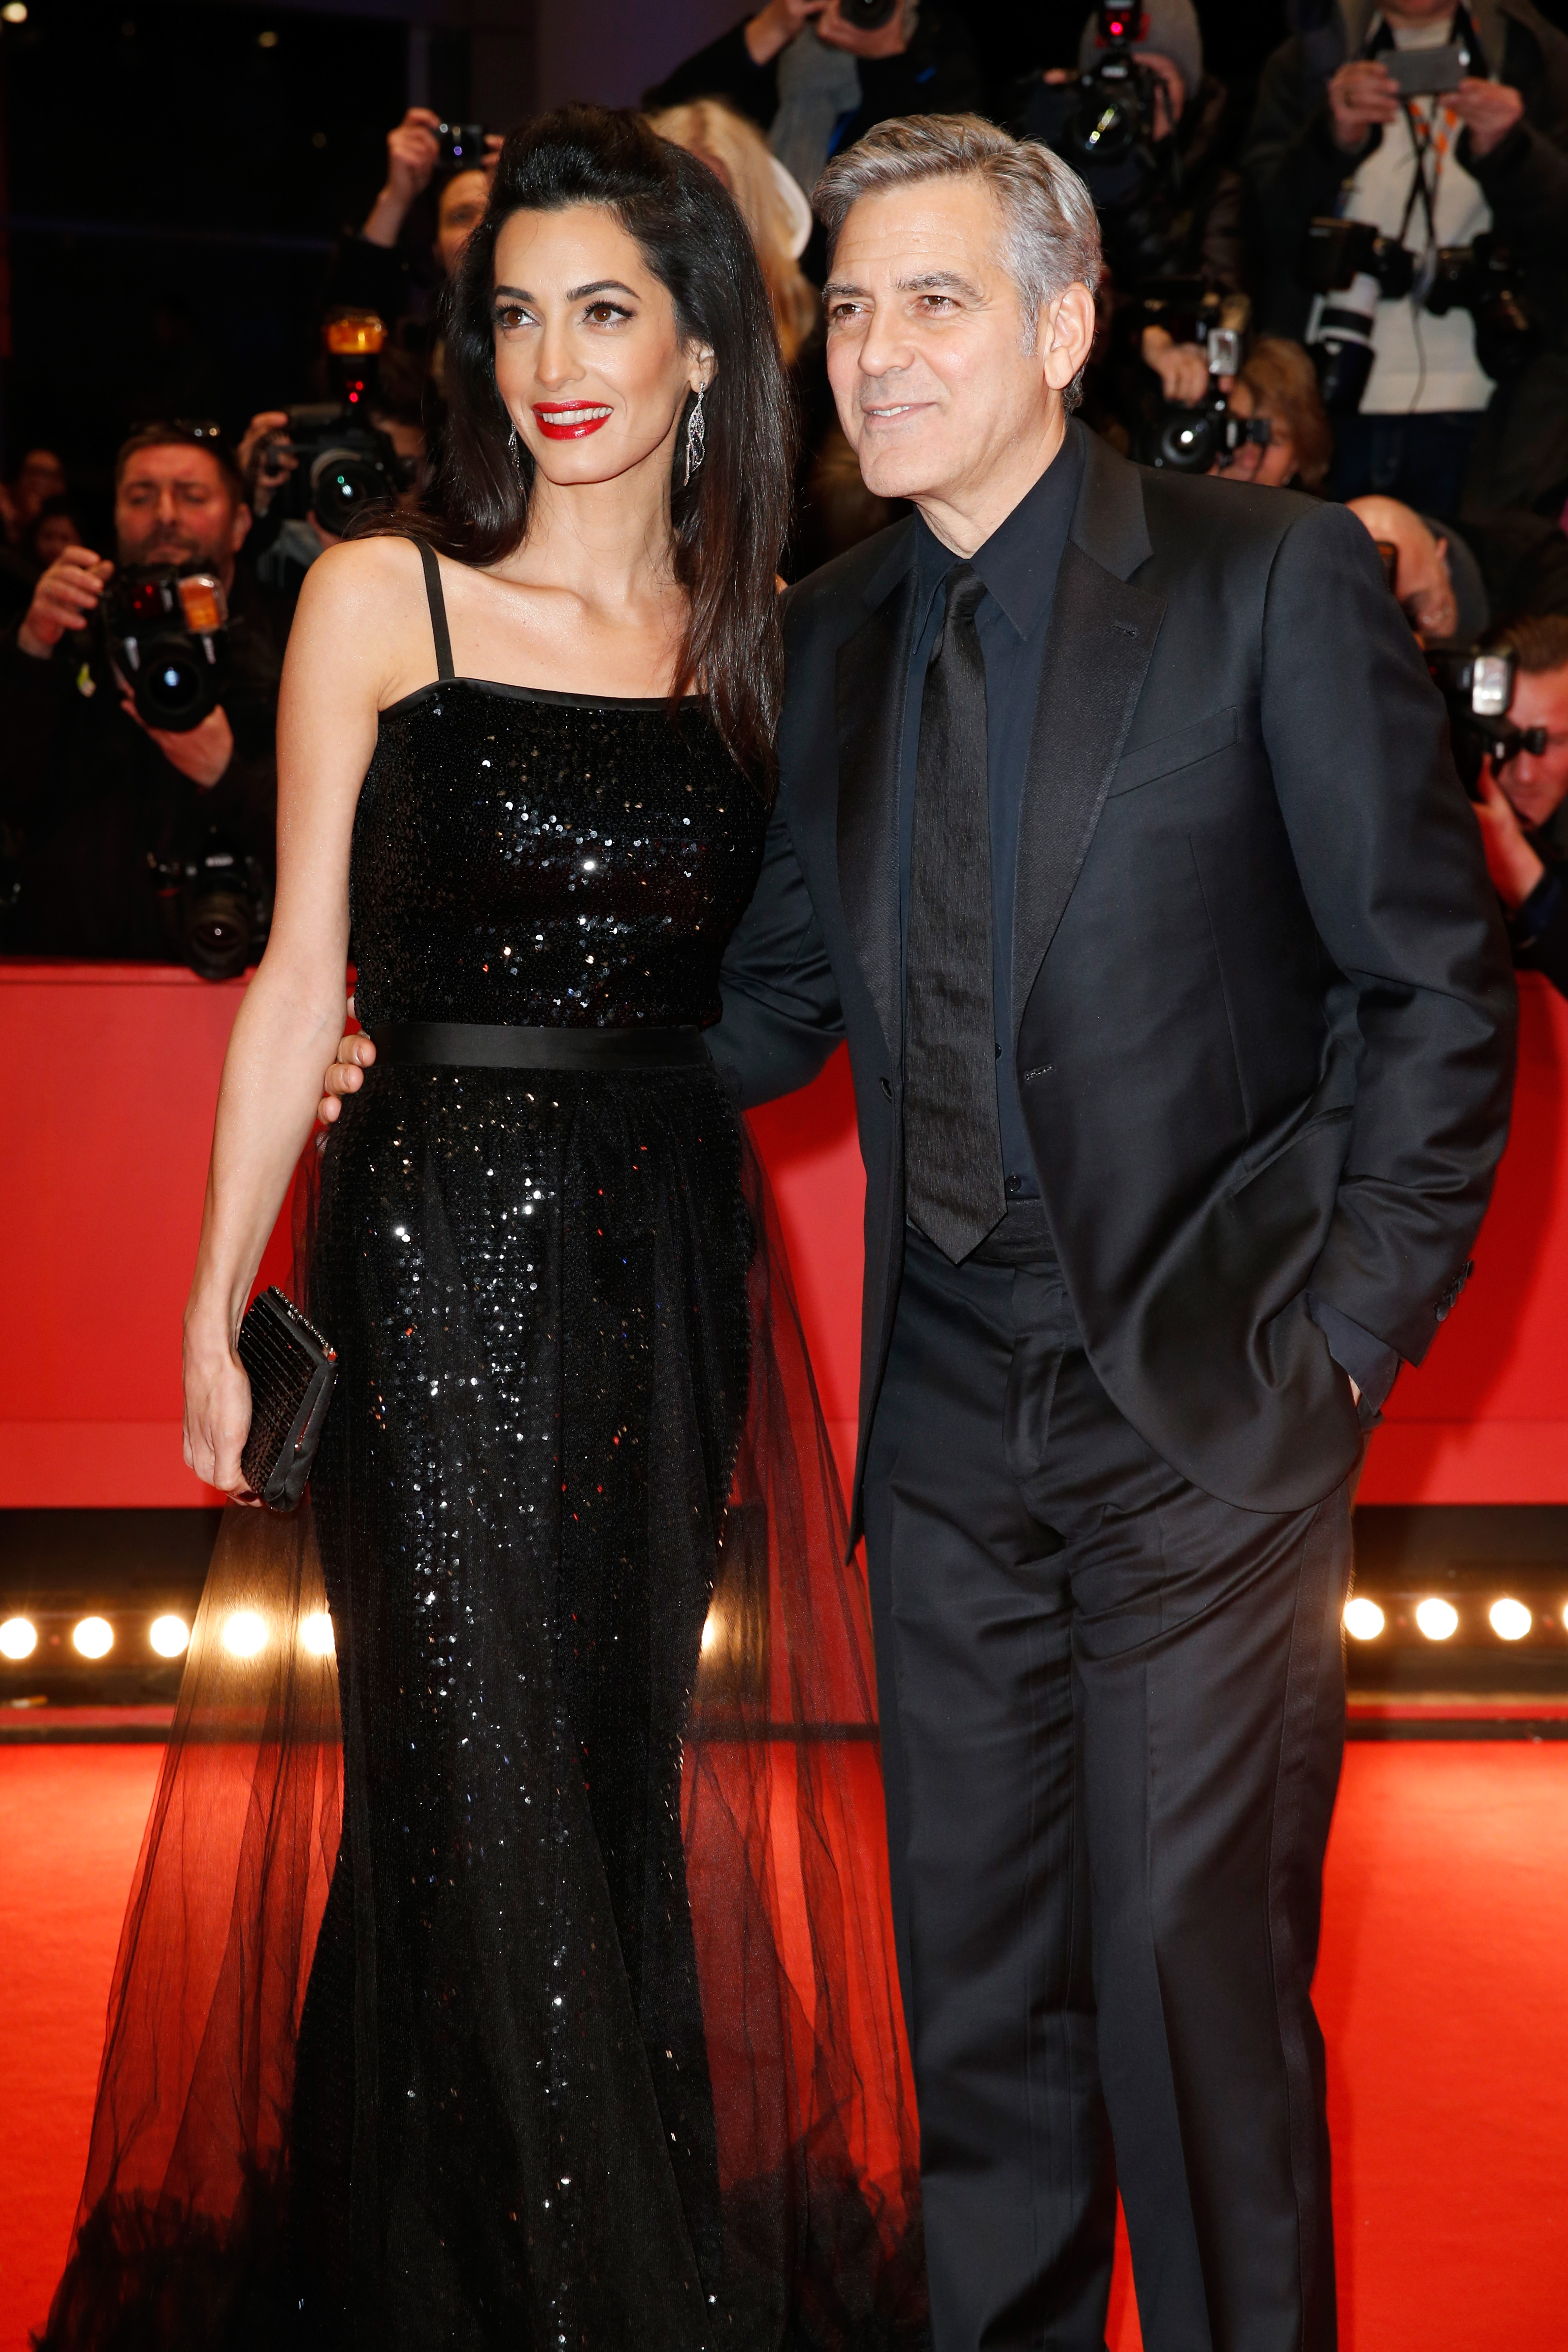 George and Amal Clooney Are Done Having Kids After Twins Ella and